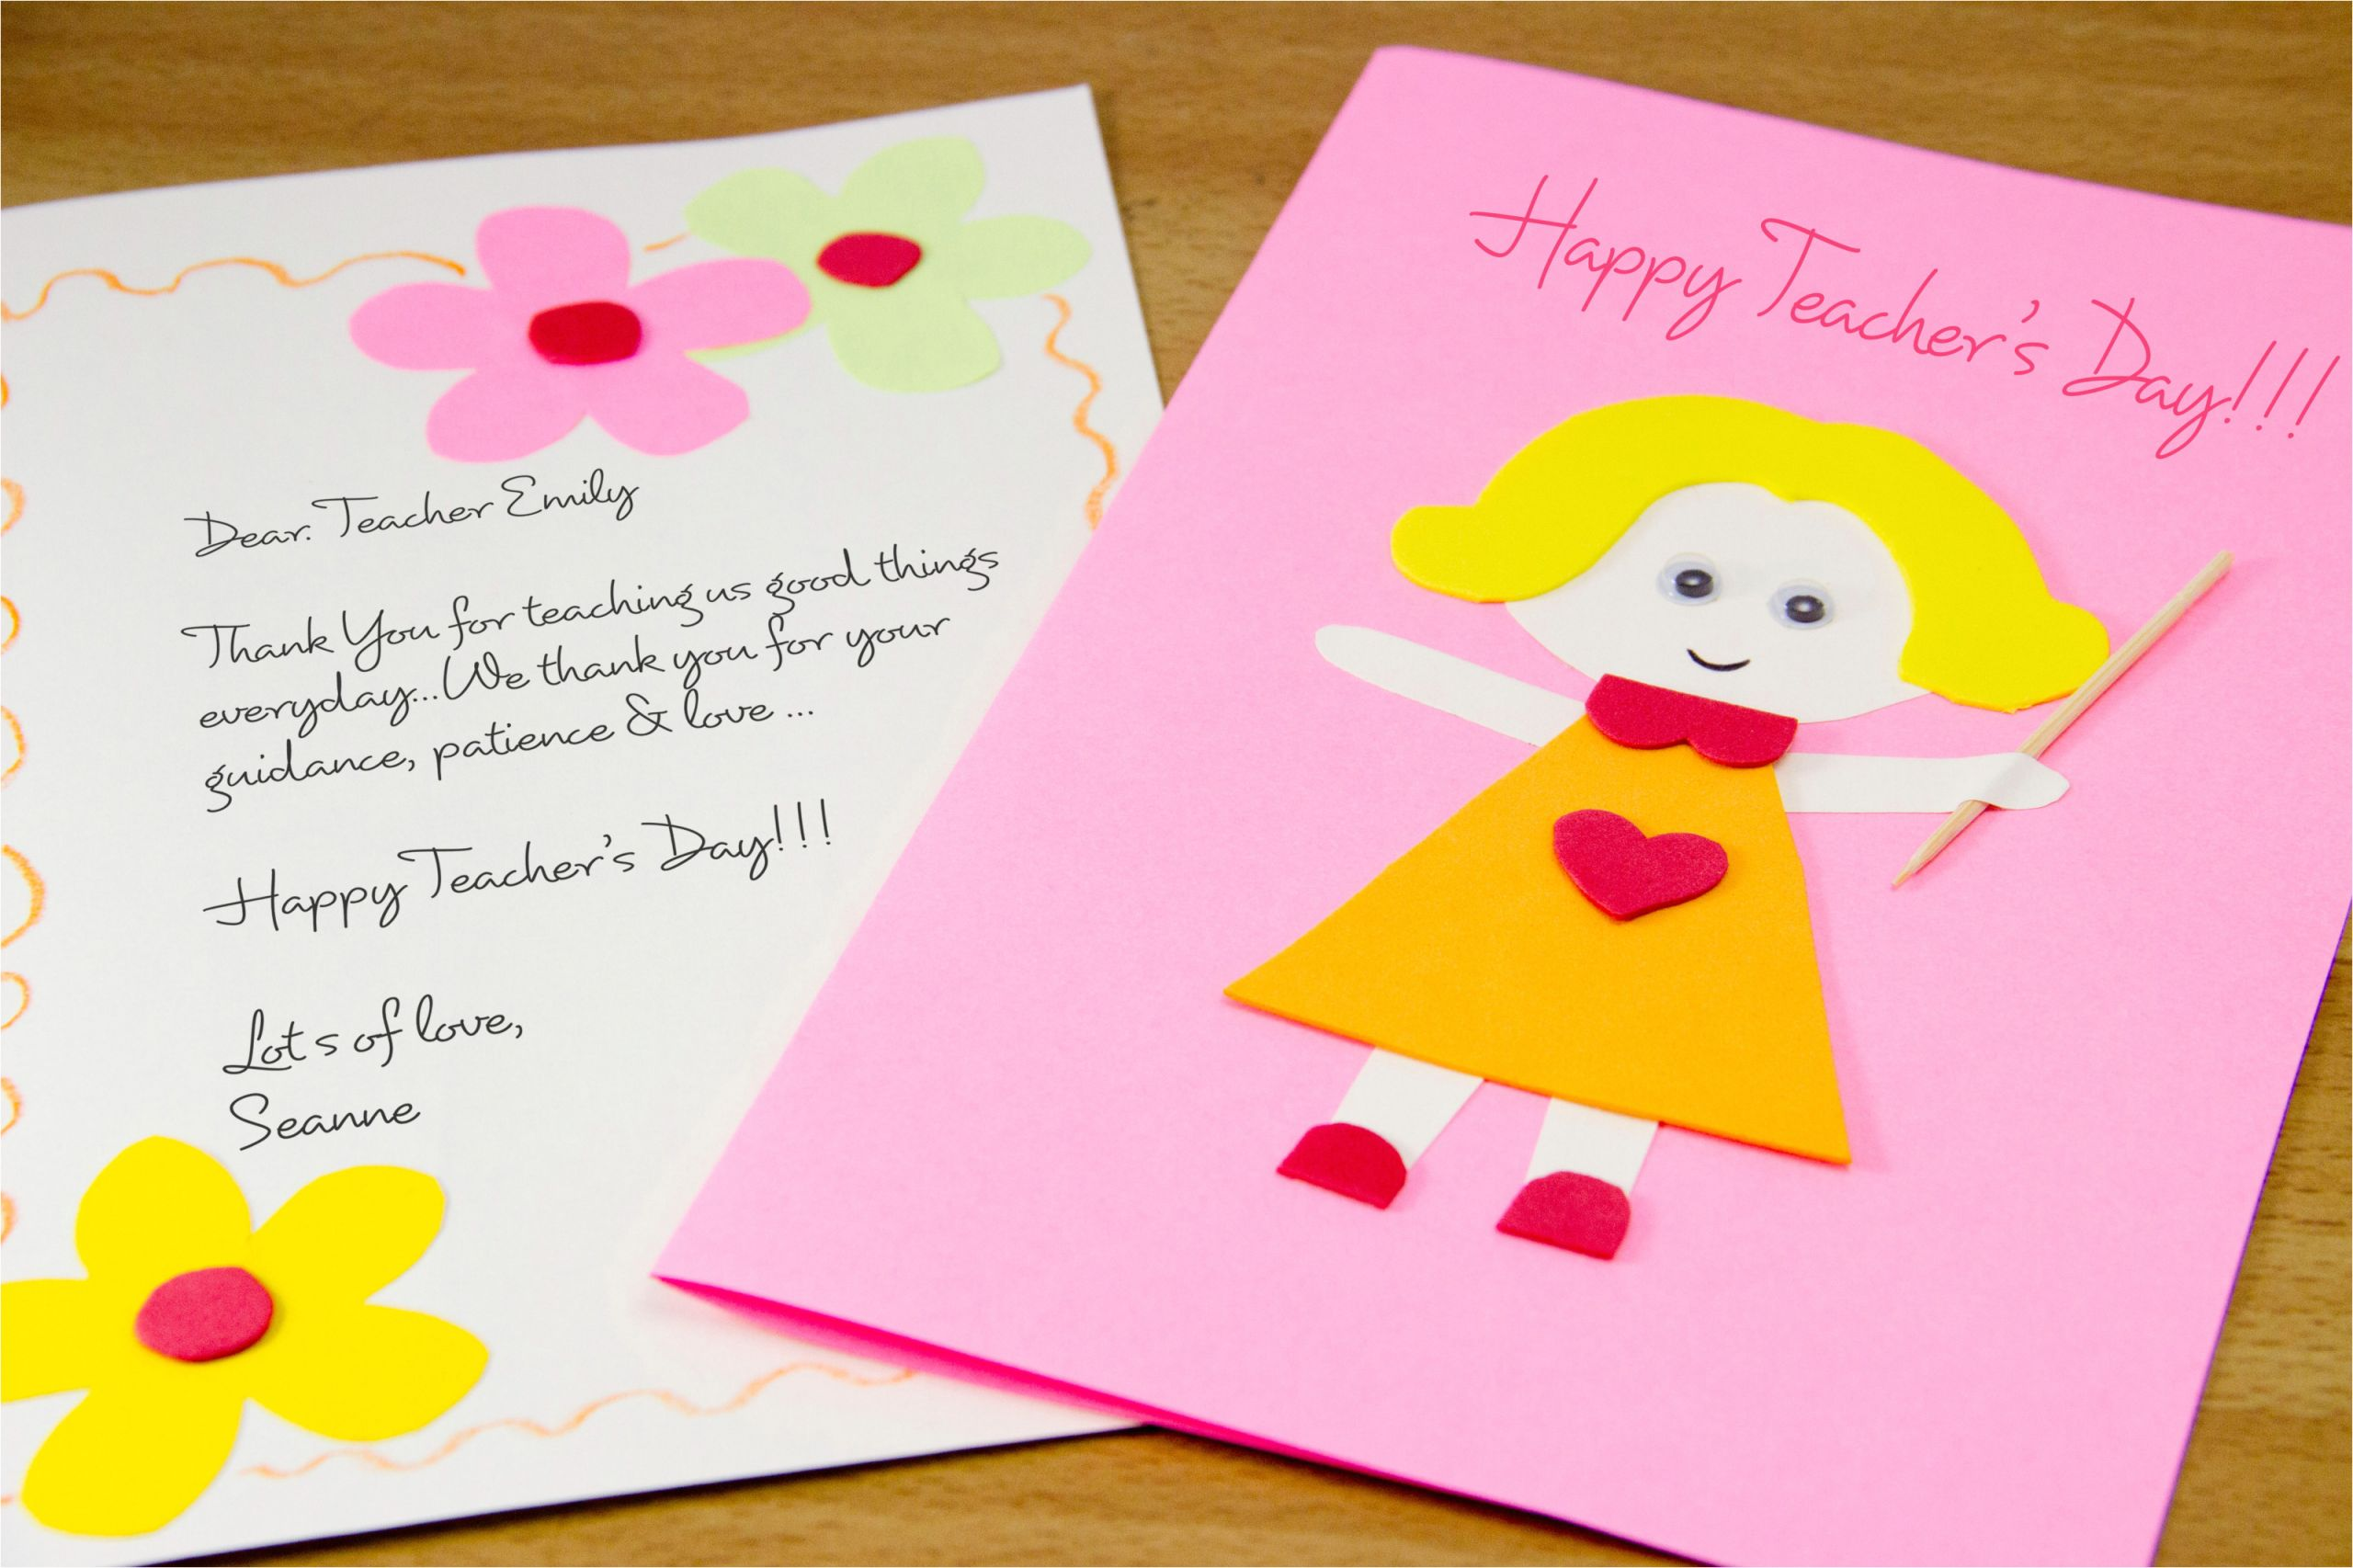 Teachers Day Greeting Card Making Ideas How to Make A Homemade Teacher S Day Card 7 Steps with